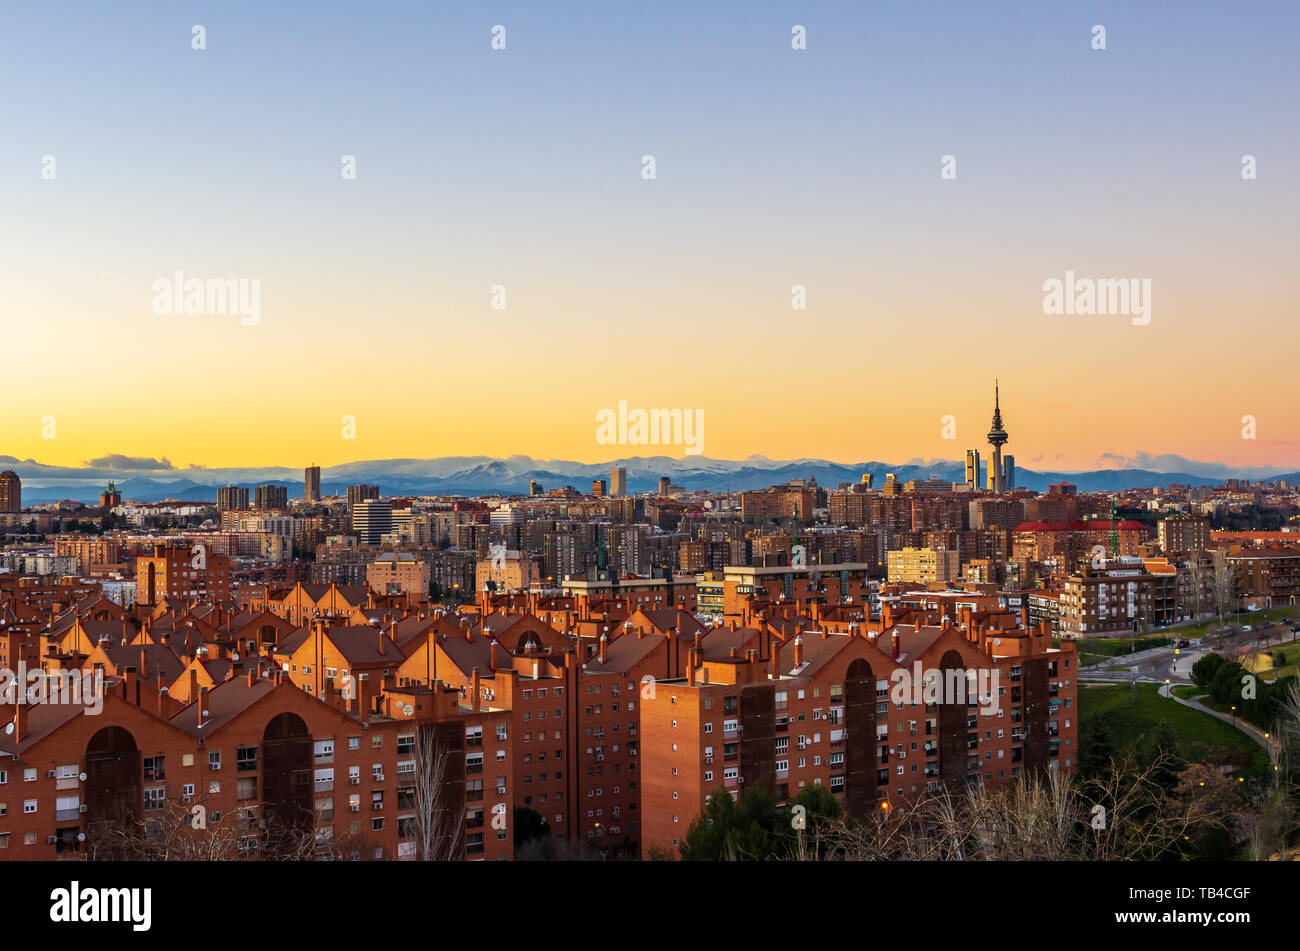 Skyline of Madrid at sunset with Sierra de Guadarrama range in background Stock Photo